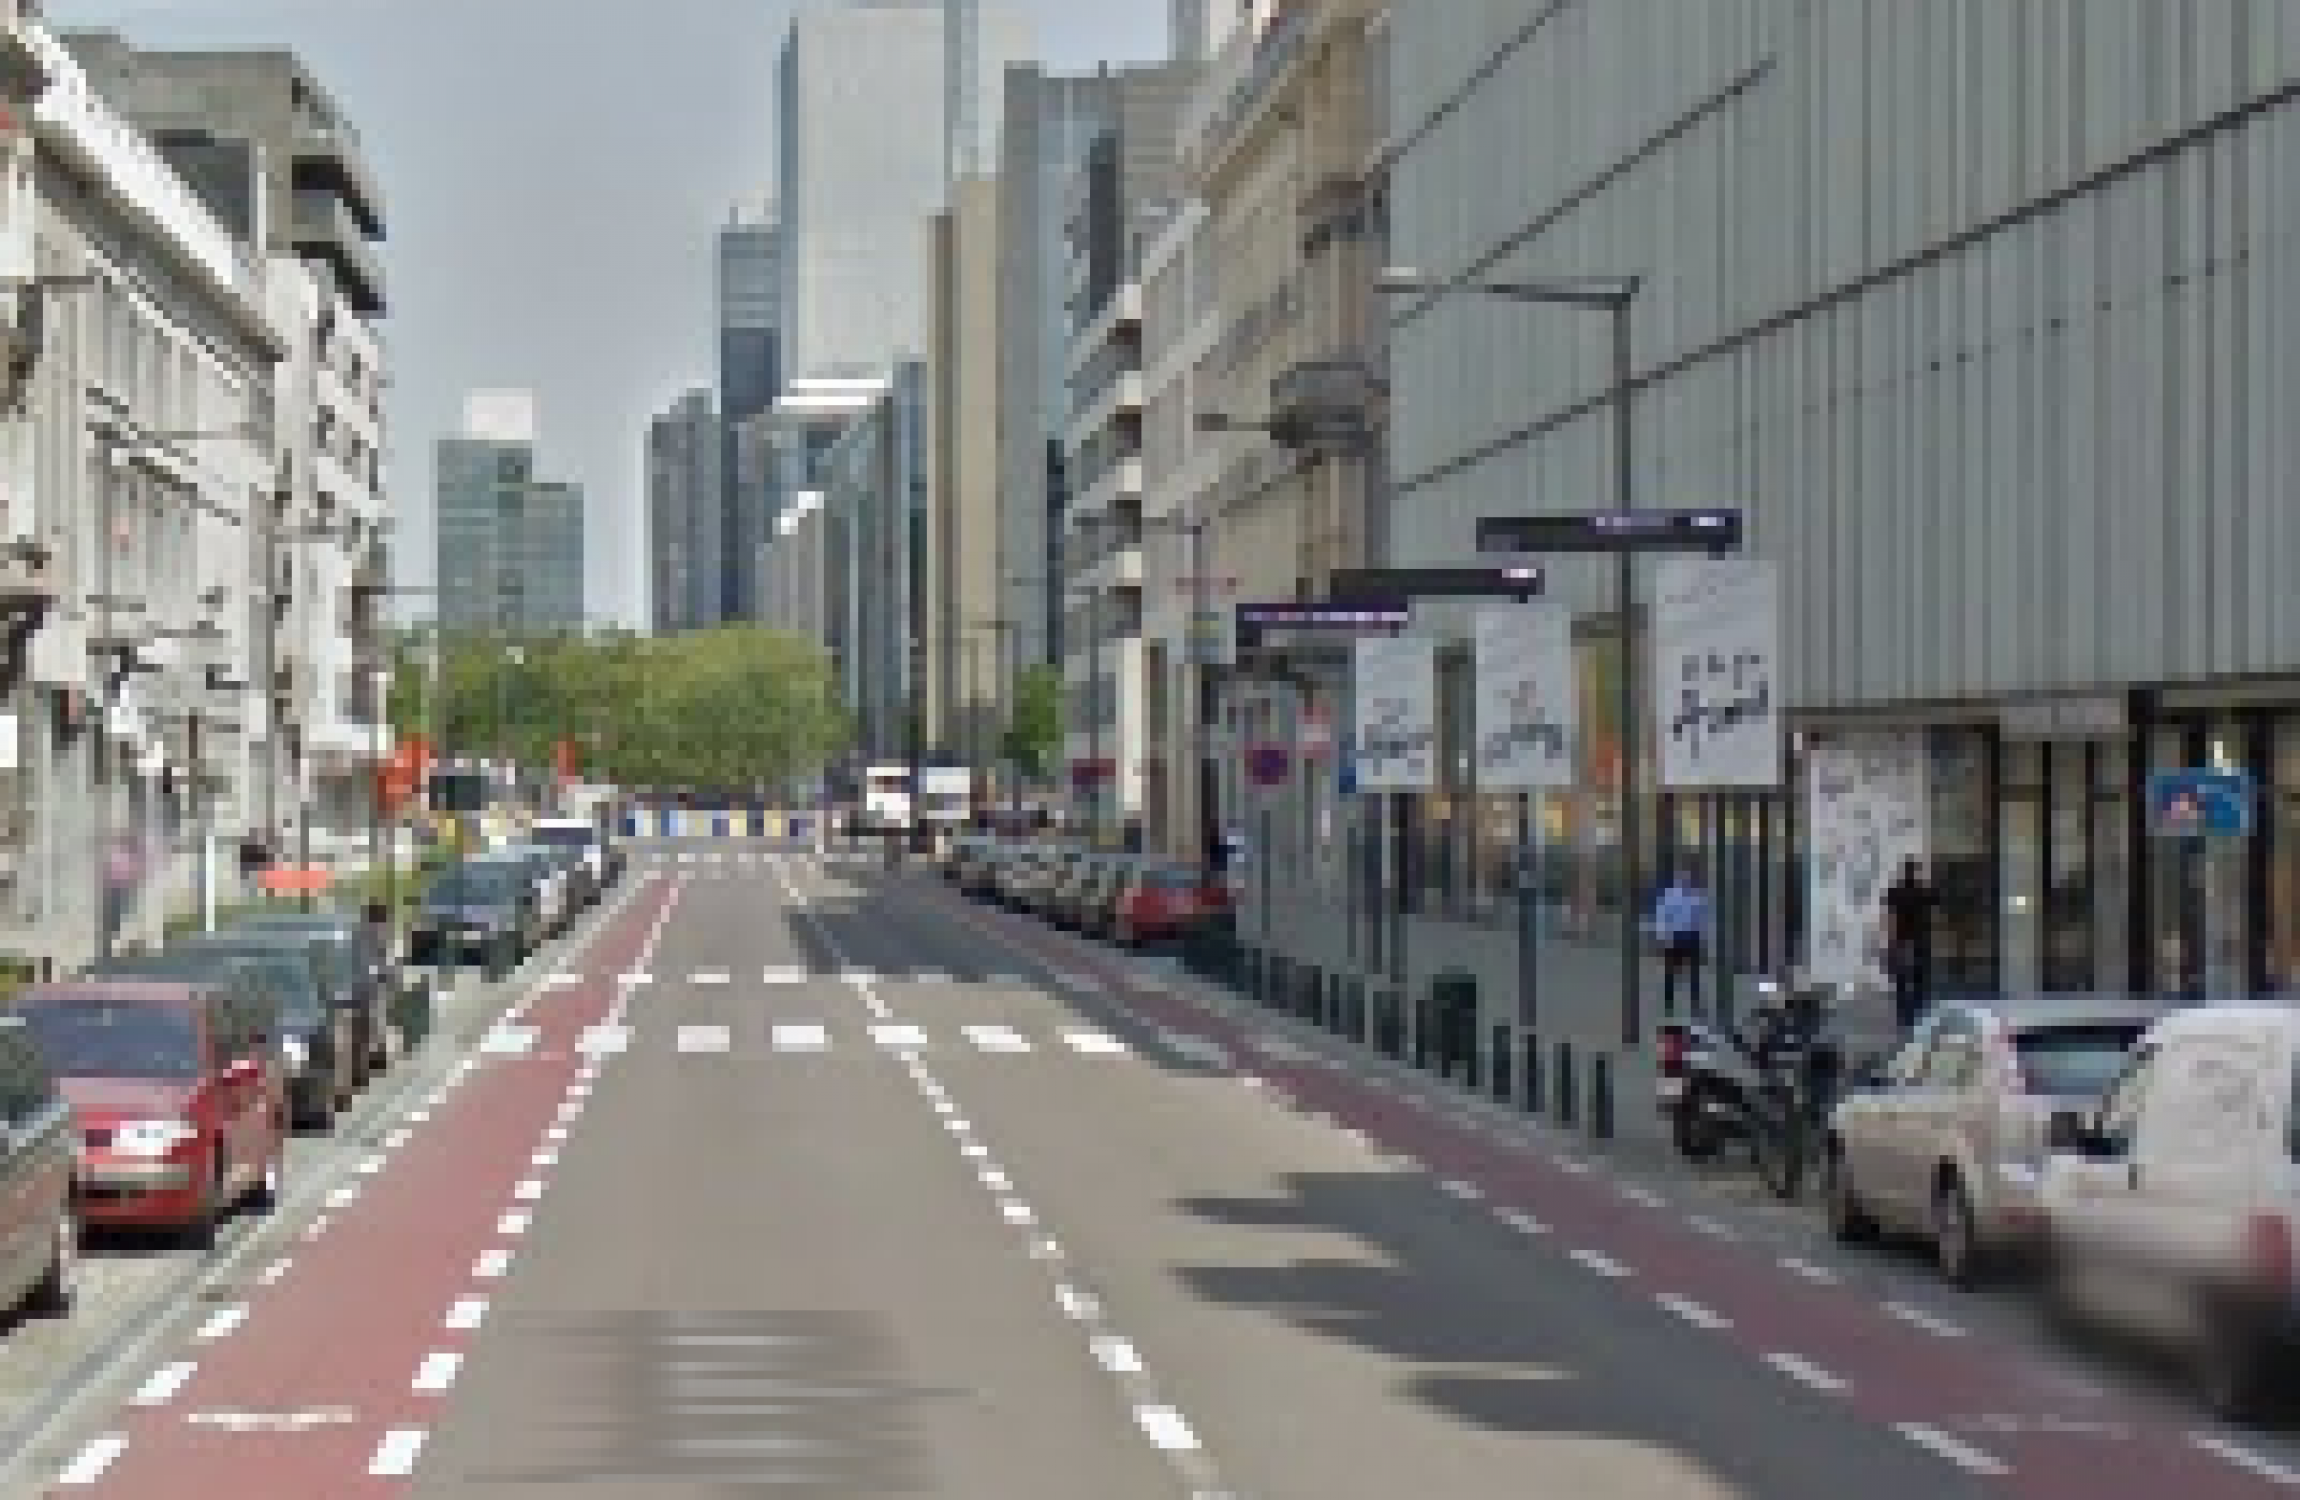 Brussels: Man Shot Dead After Attacking Soldiers With Machete